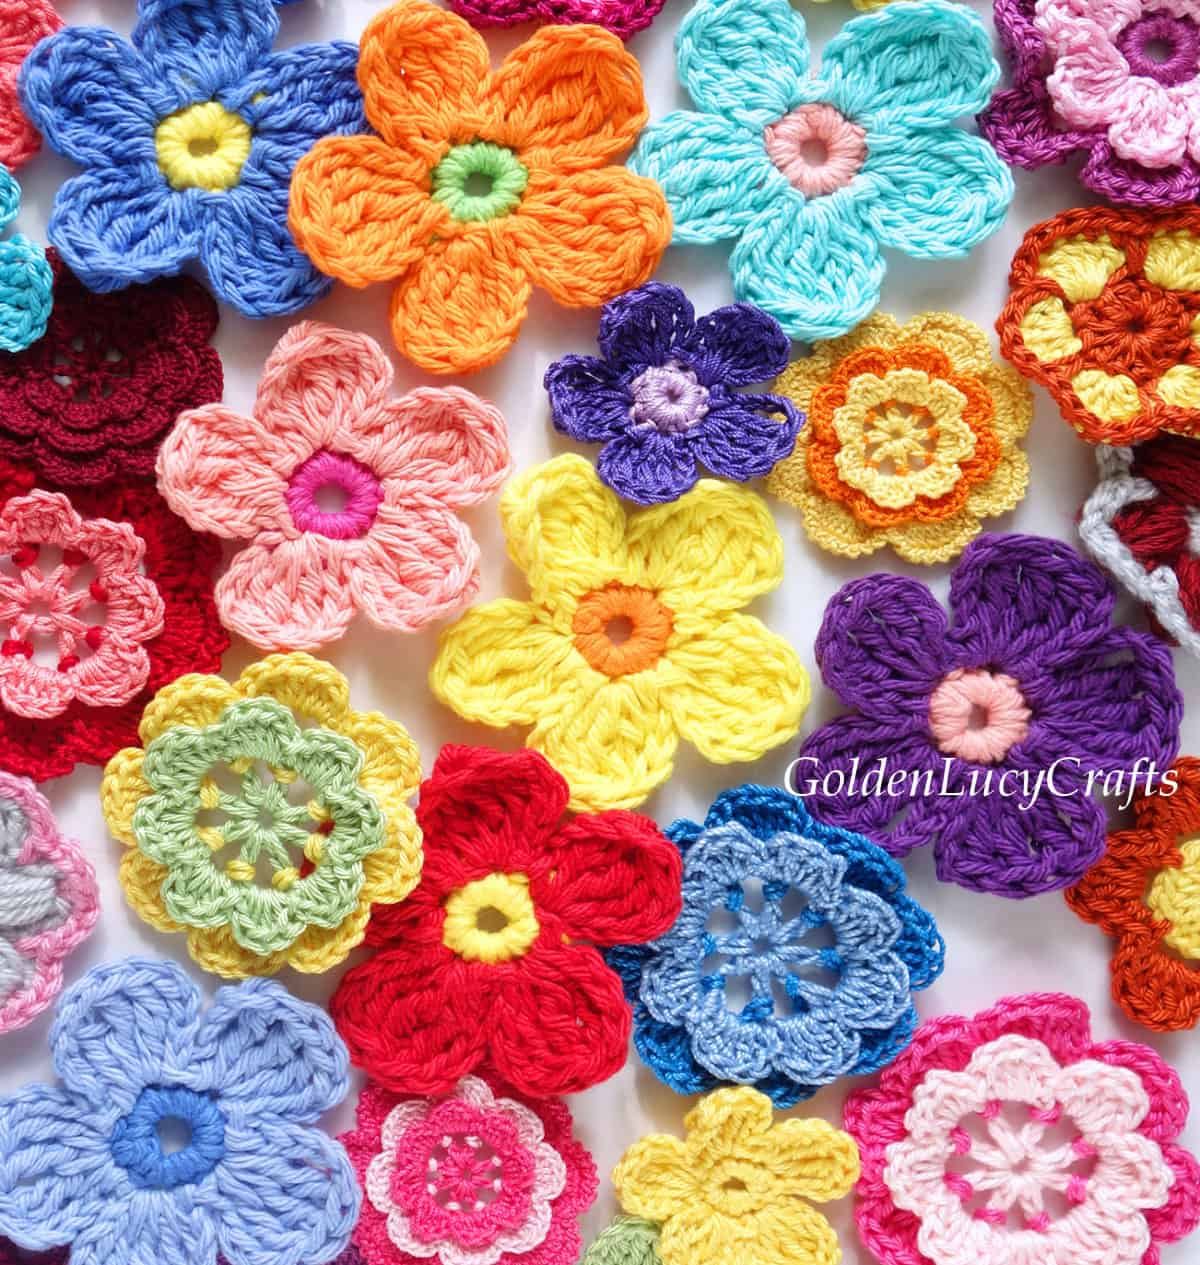 Bunch of crocheted flowers.